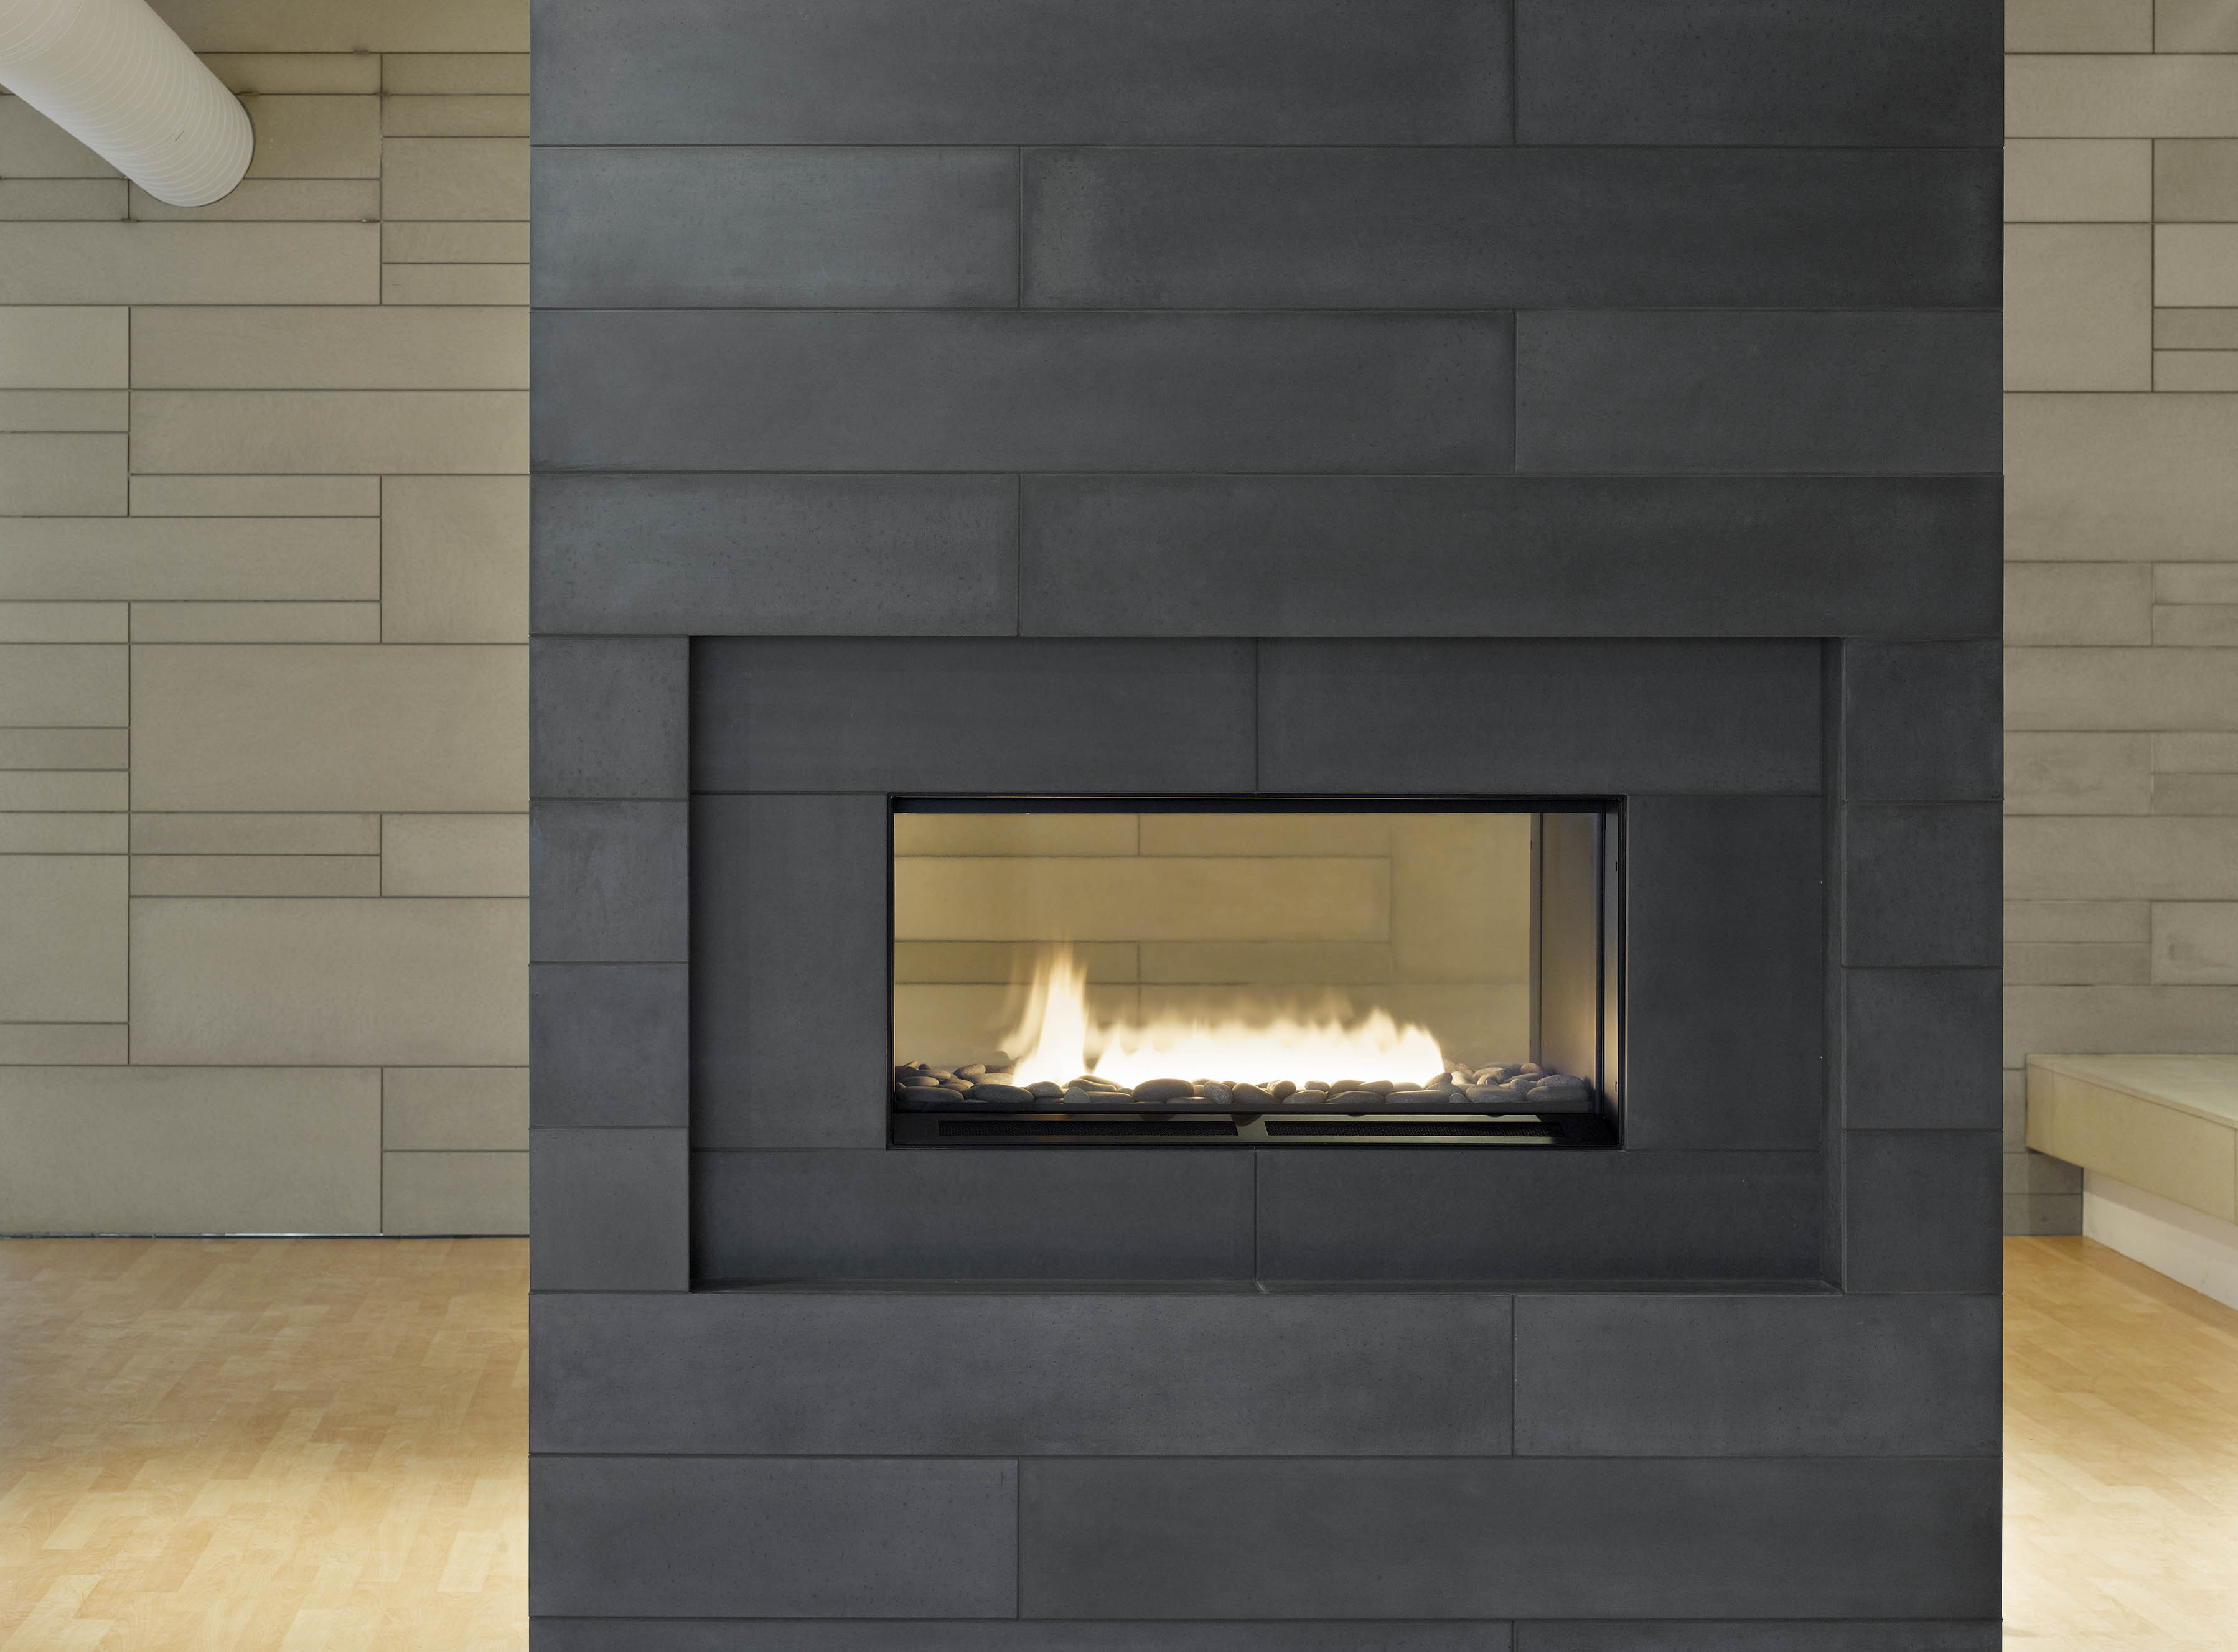 Best ideas about Tile For Fireplace . Save or Pin Fireplace tiles charcoal 2 Now.